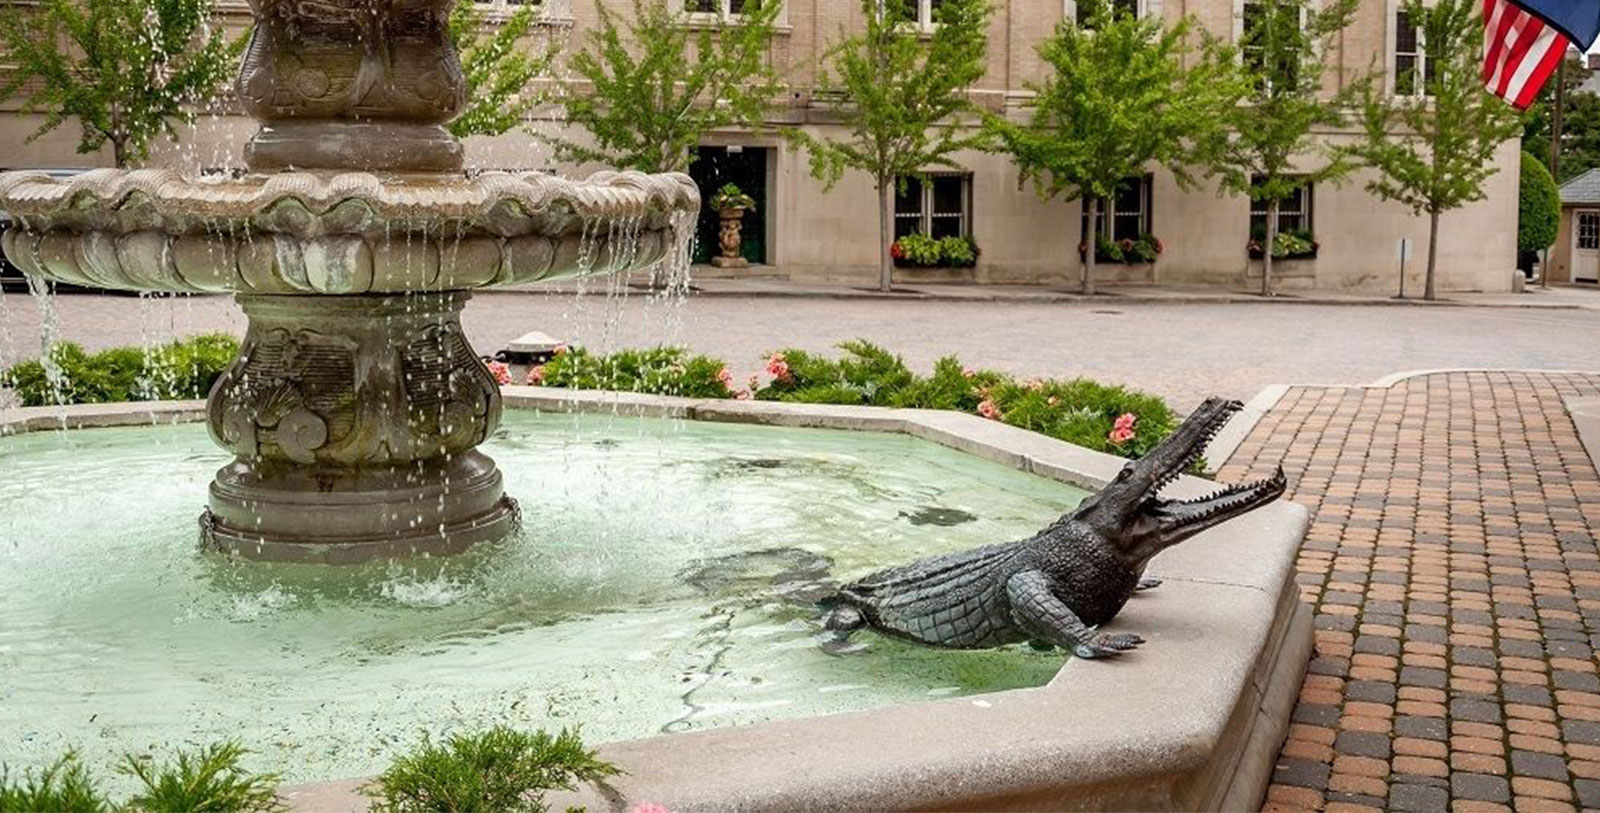 Image of Exterior Fountain with Alligator at The Jefferson Hotel, a member of Historic Hotels of America, in Richmond, Virginia